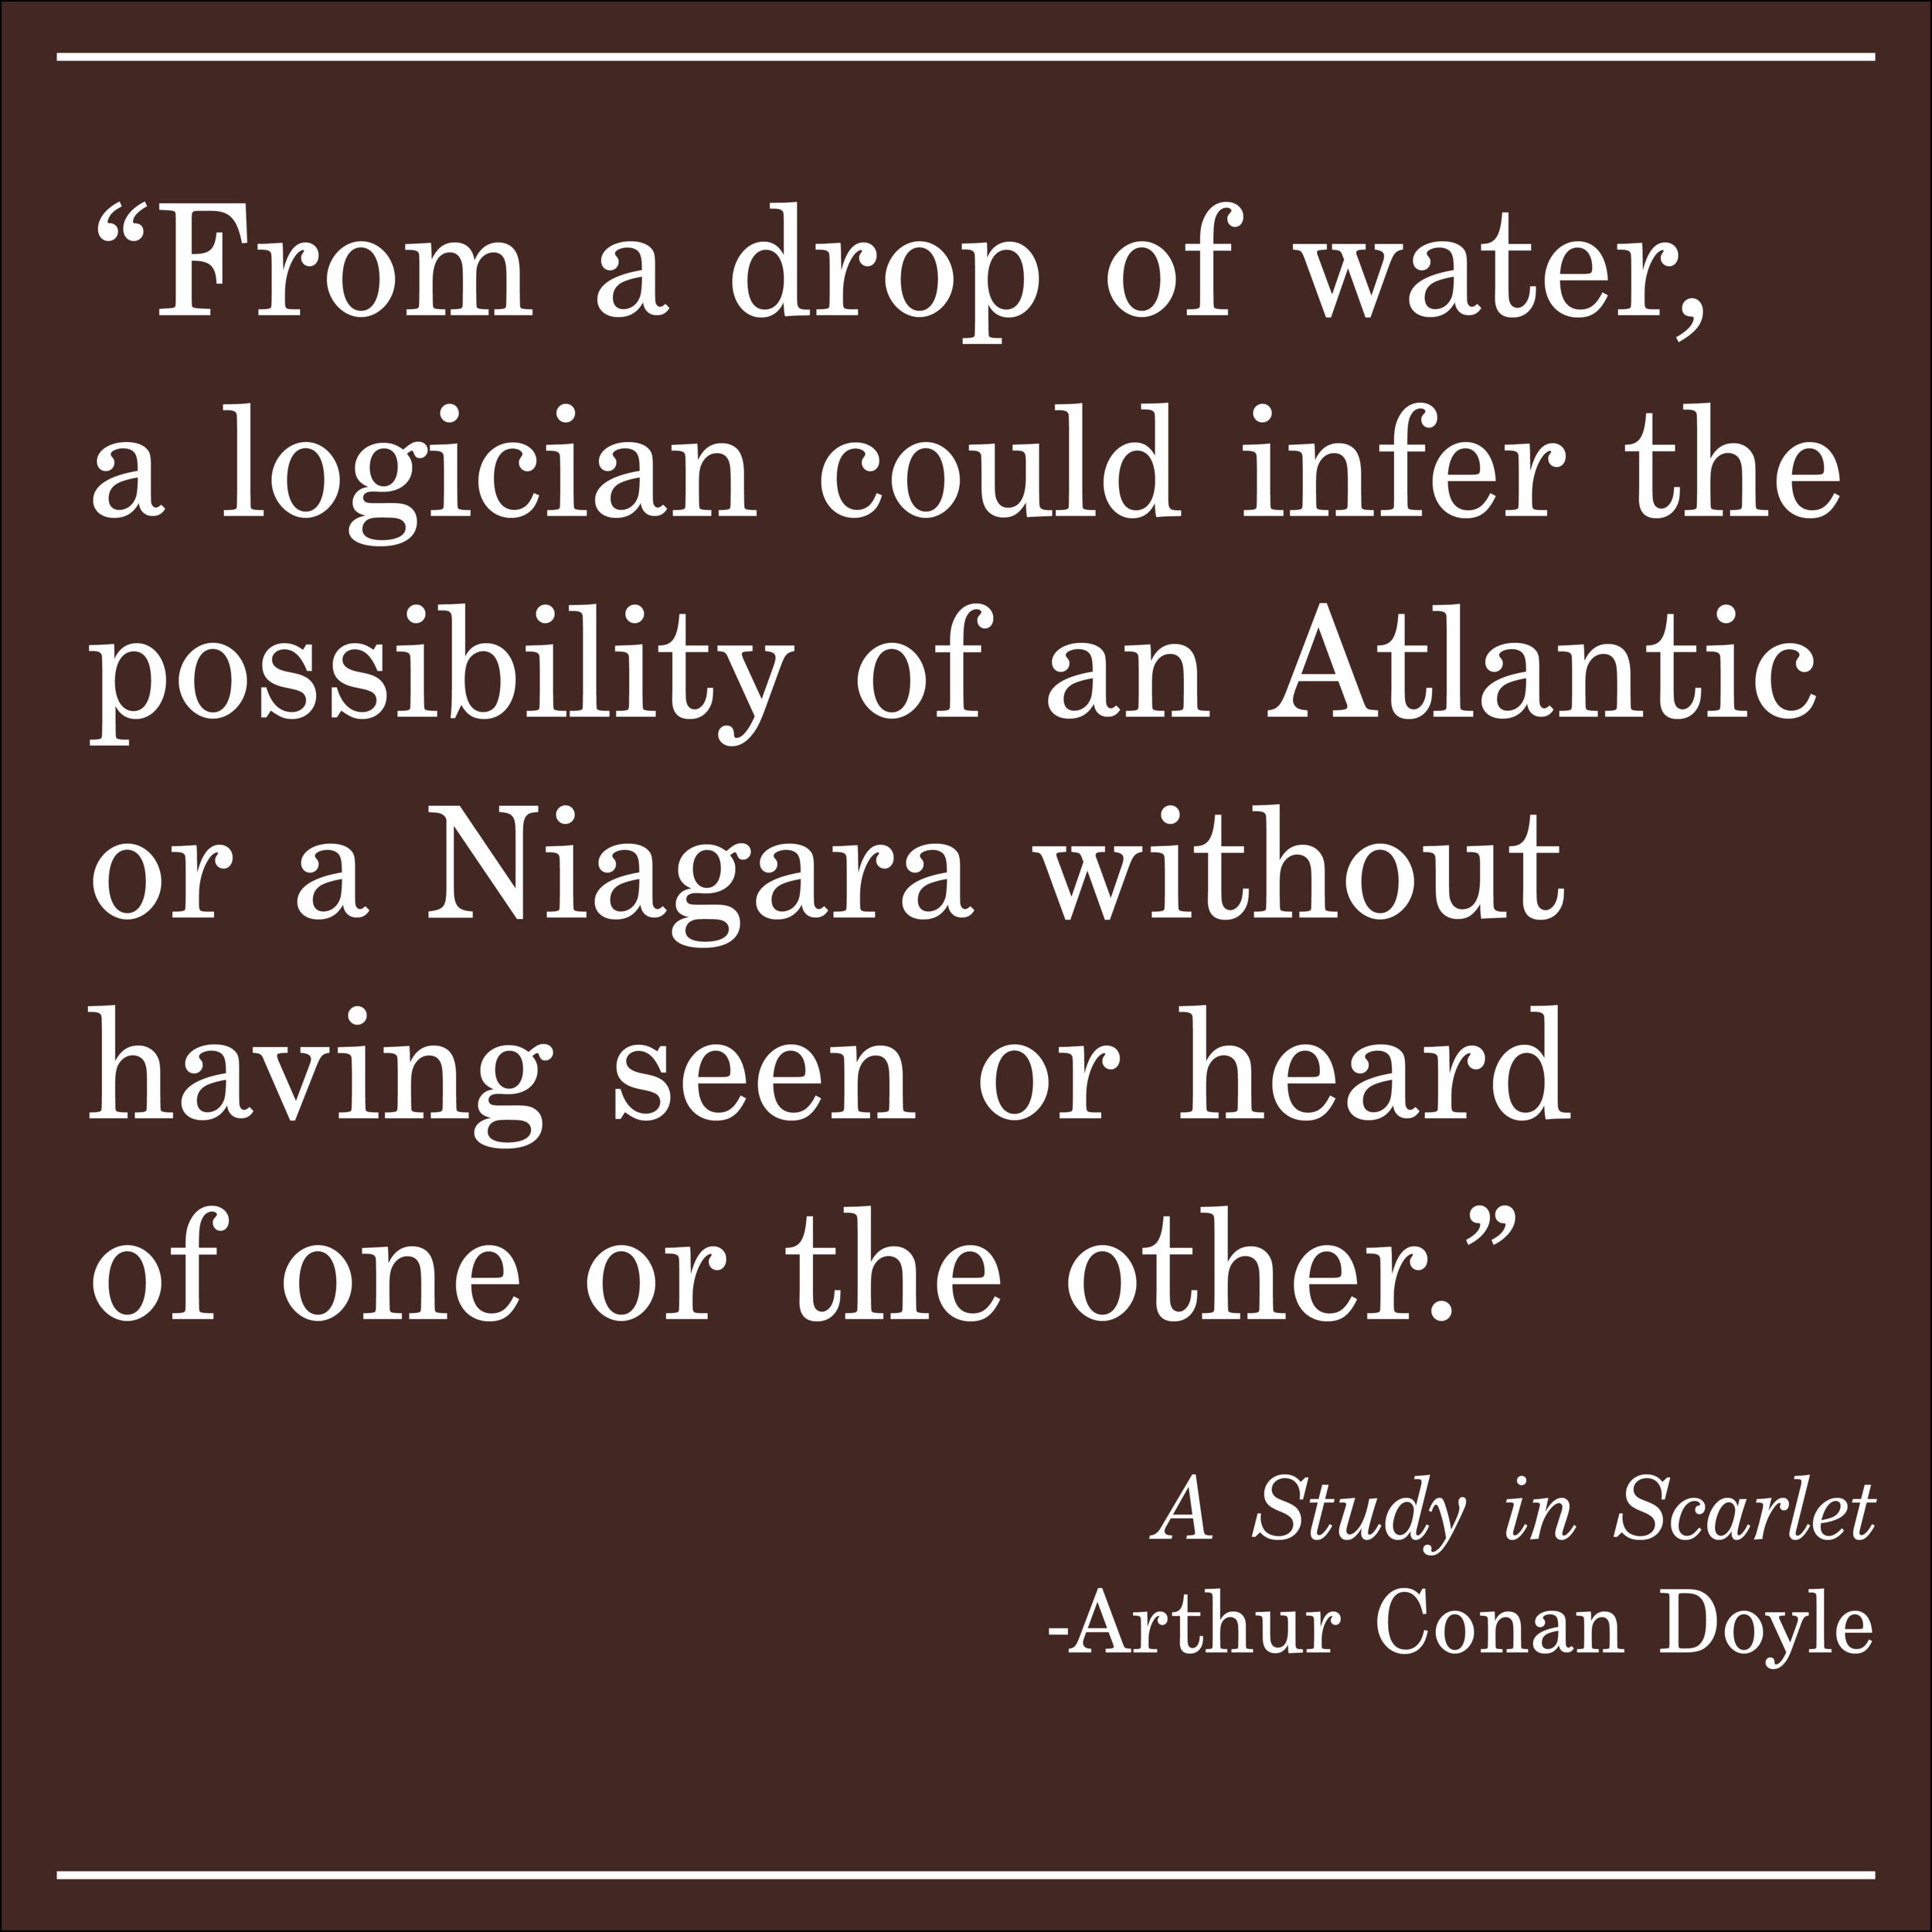 Daily Quote A Study in Scarlet by Arthur Conan Doyle